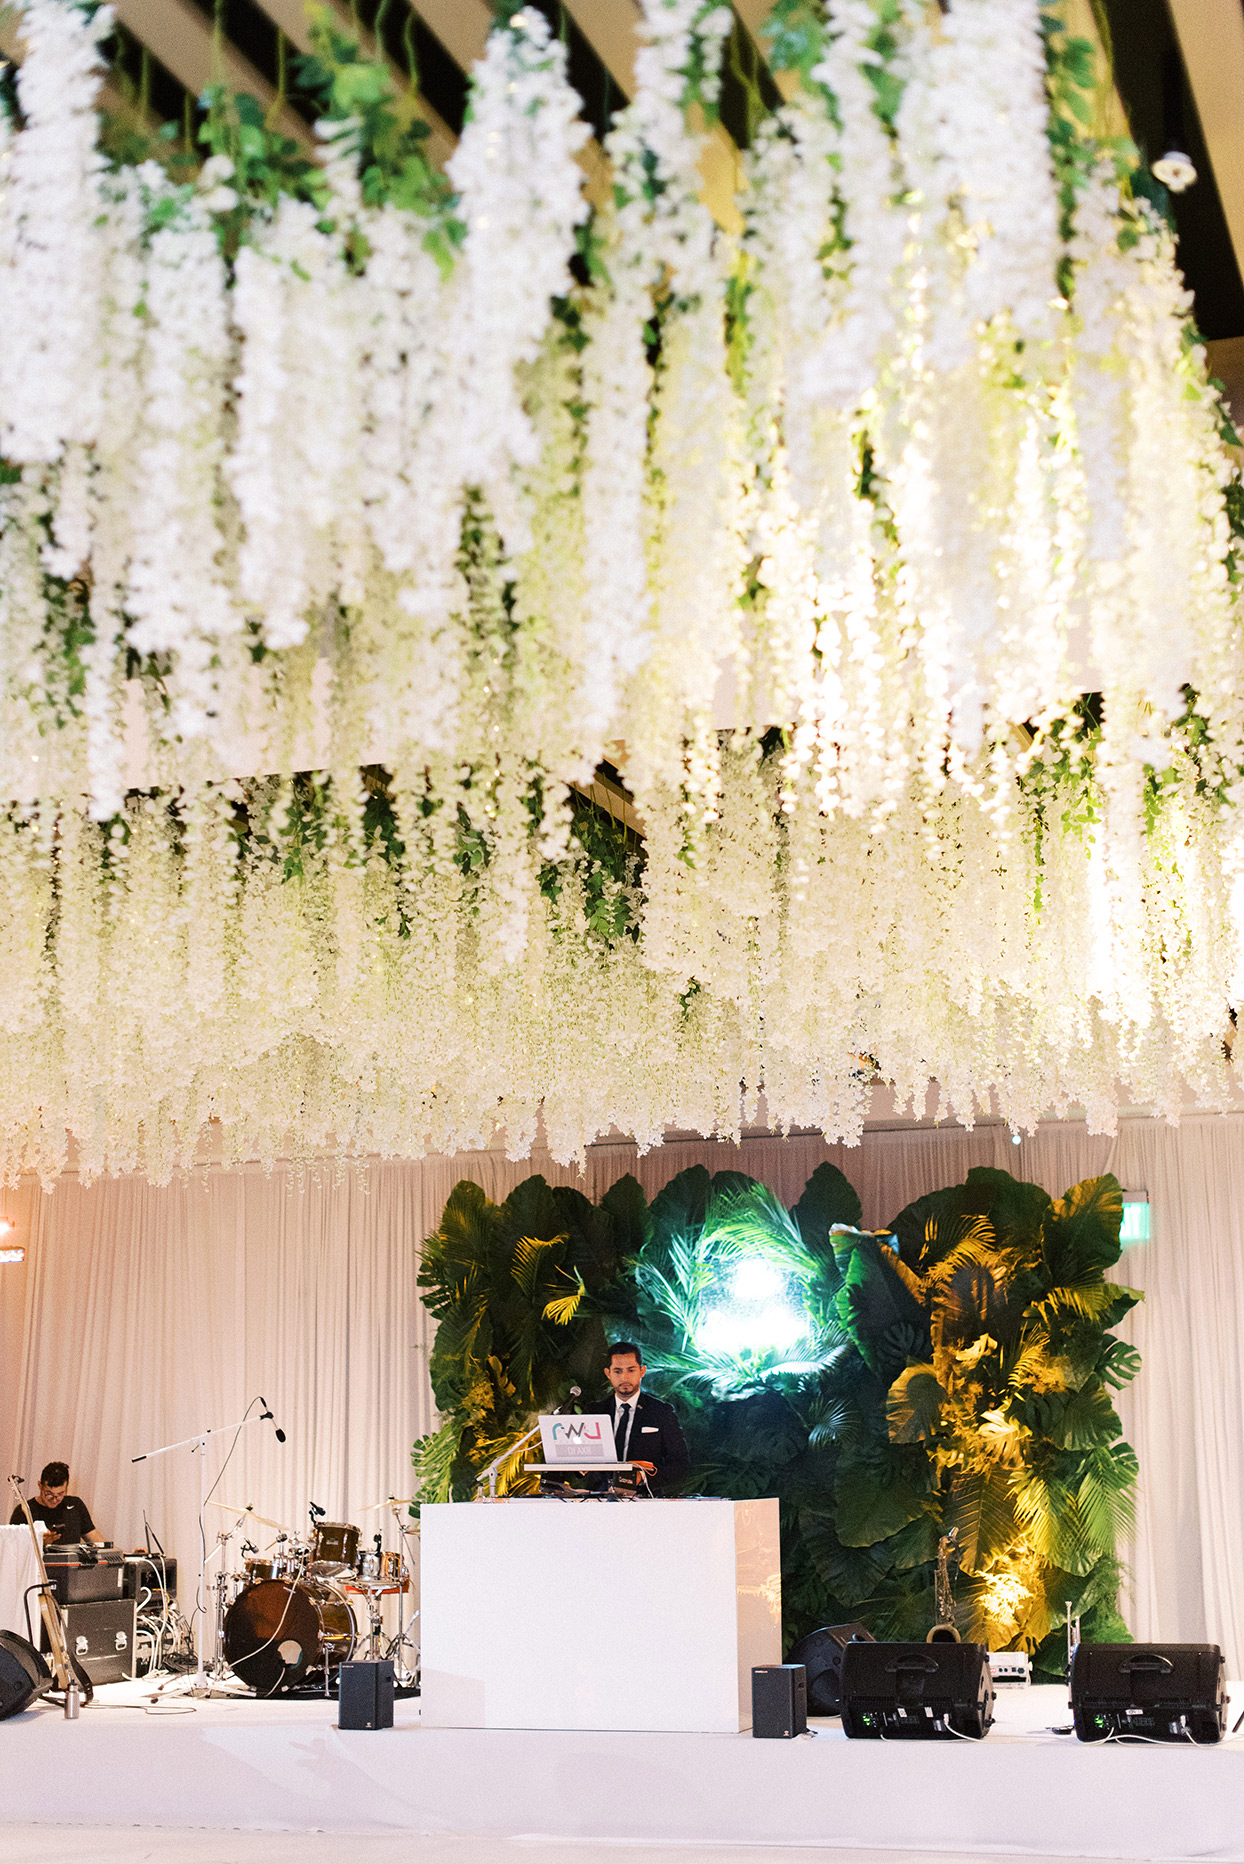 wisteria hanging over the dance floor at reception